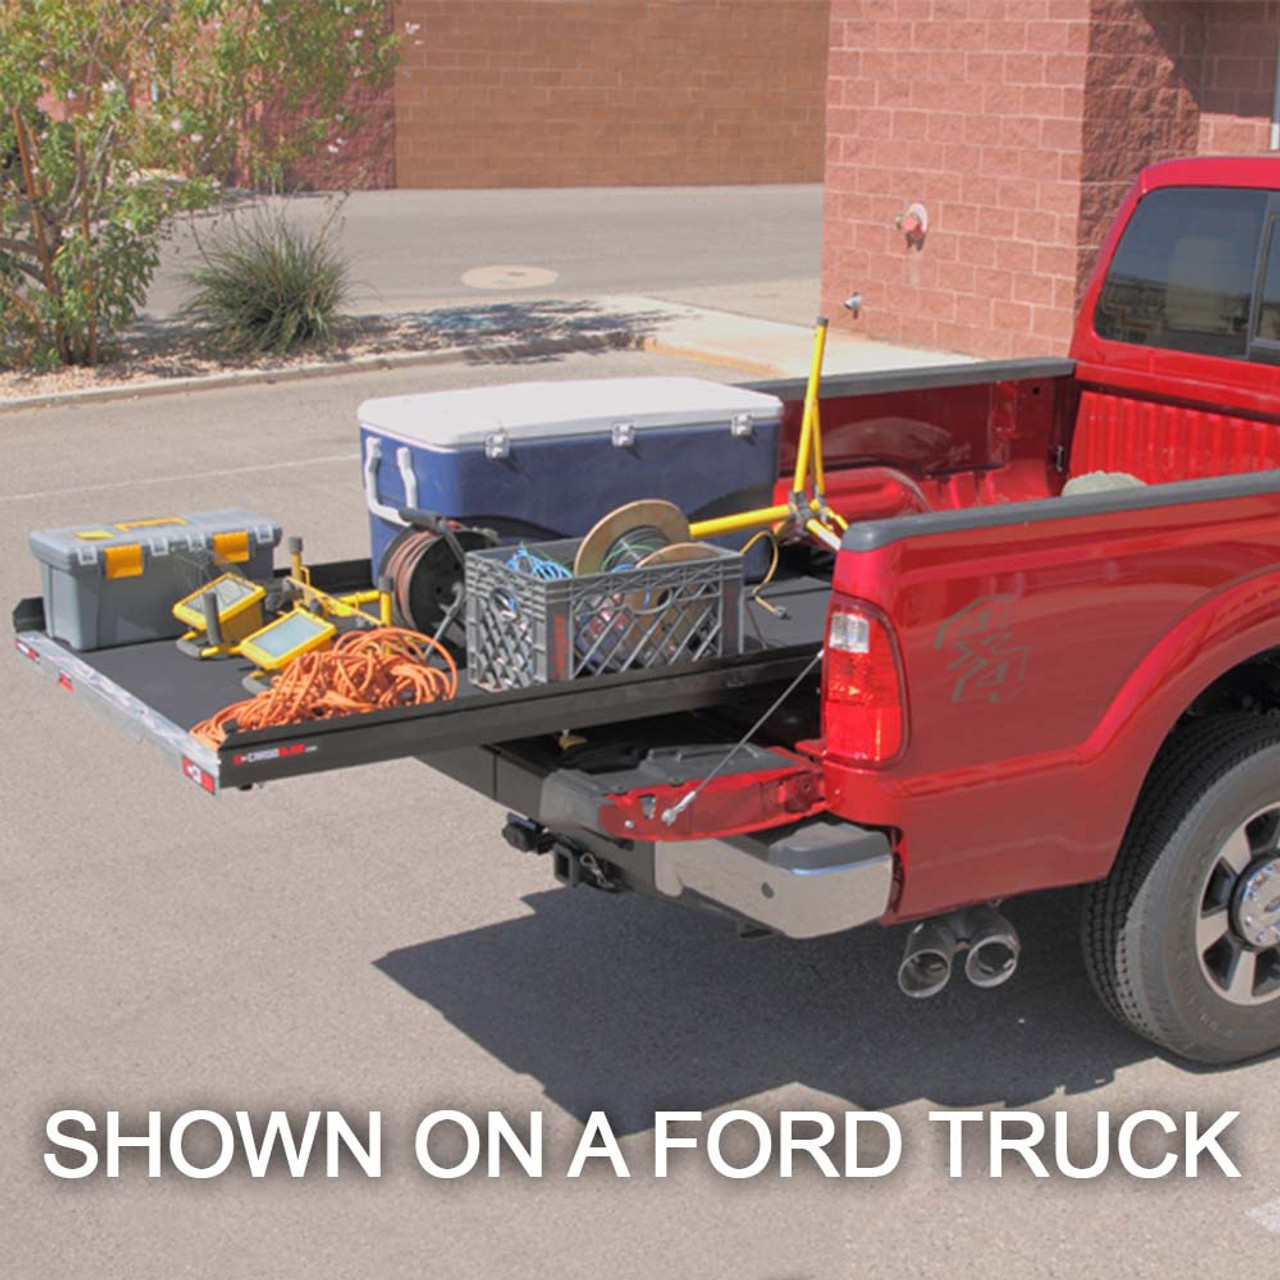 "Cargo-Glide CG1000 Toyota Tacoma Steel Truck-Bed Slide and Extender, 1000 lb Capacity, 65-75% Extension, 4"" Side Rails, 3.875"" Deck Height, Includes Installation Kit"